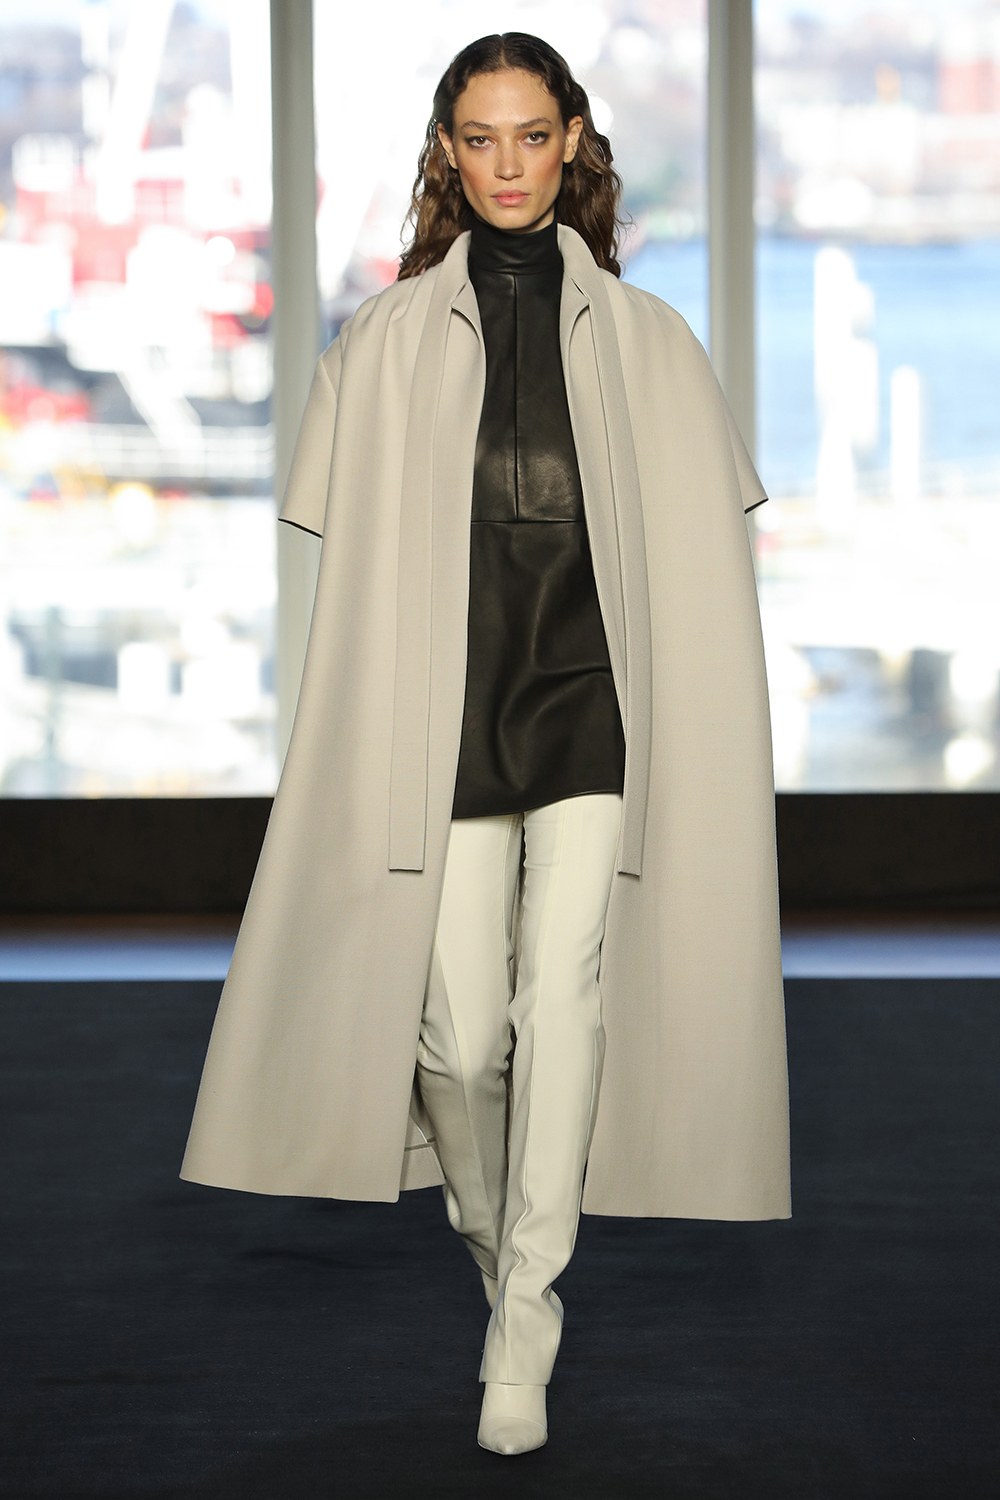 Look 2 Stone wool barathea coat over black leather/wool tunic with white wool twill pant.